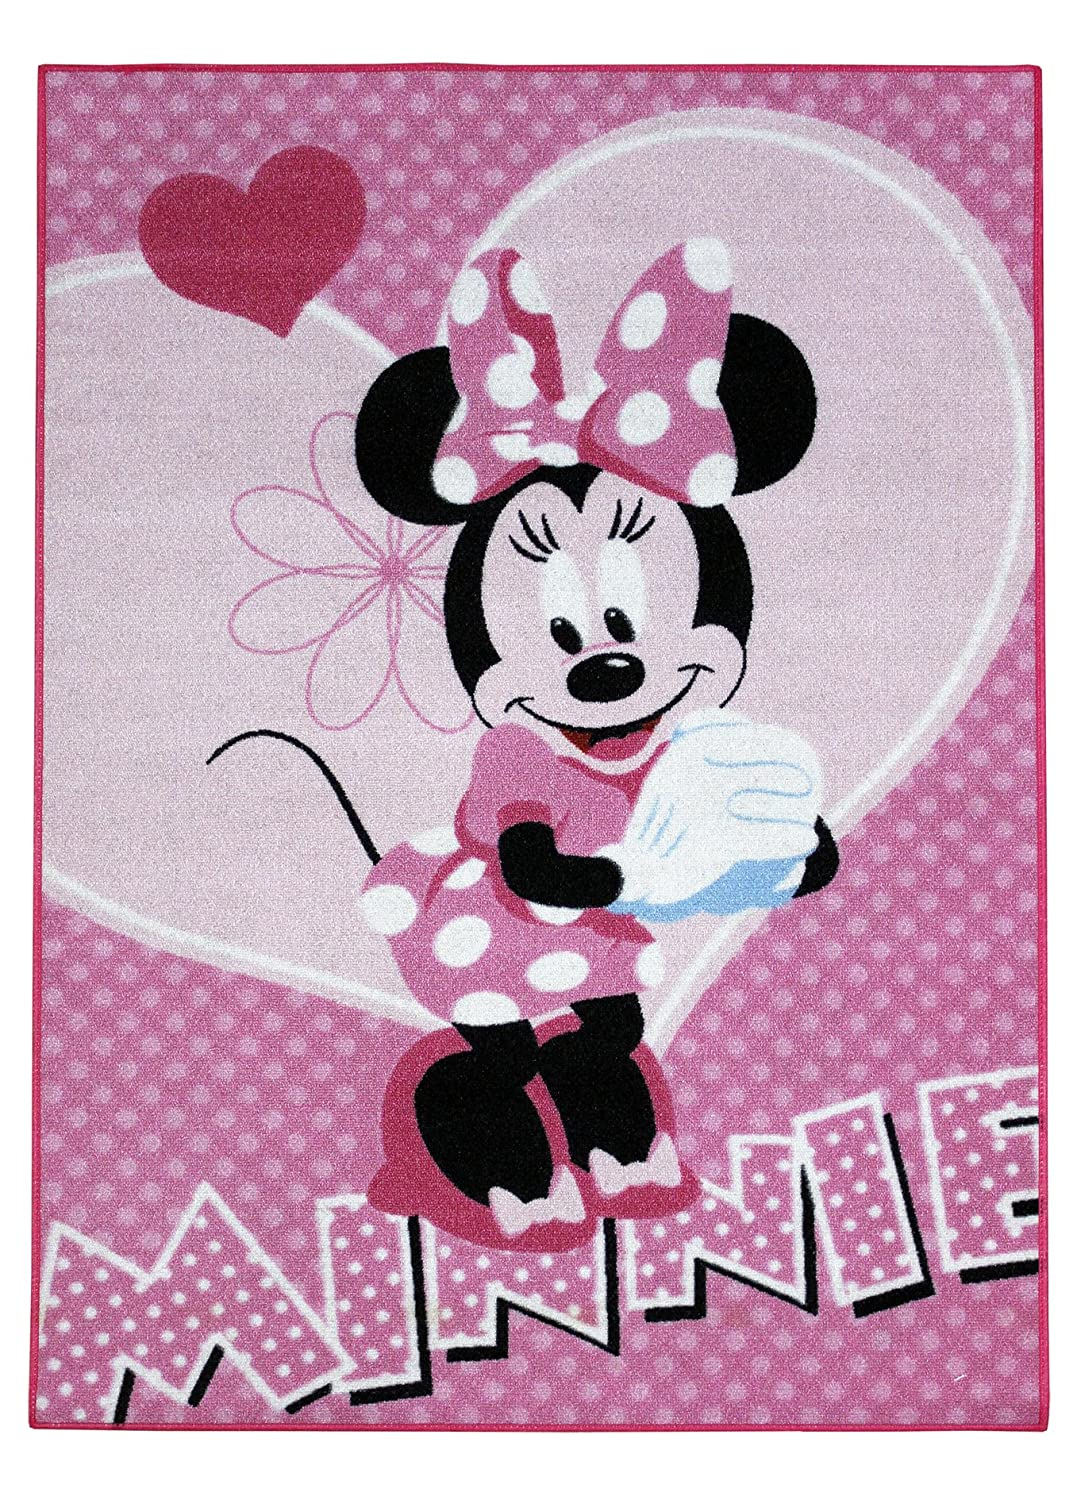 disney minnie mouse maus xxxl teppich abtreter bettvorleger badematte matte neu ebay. Black Bedroom Furniture Sets. Home Design Ideas